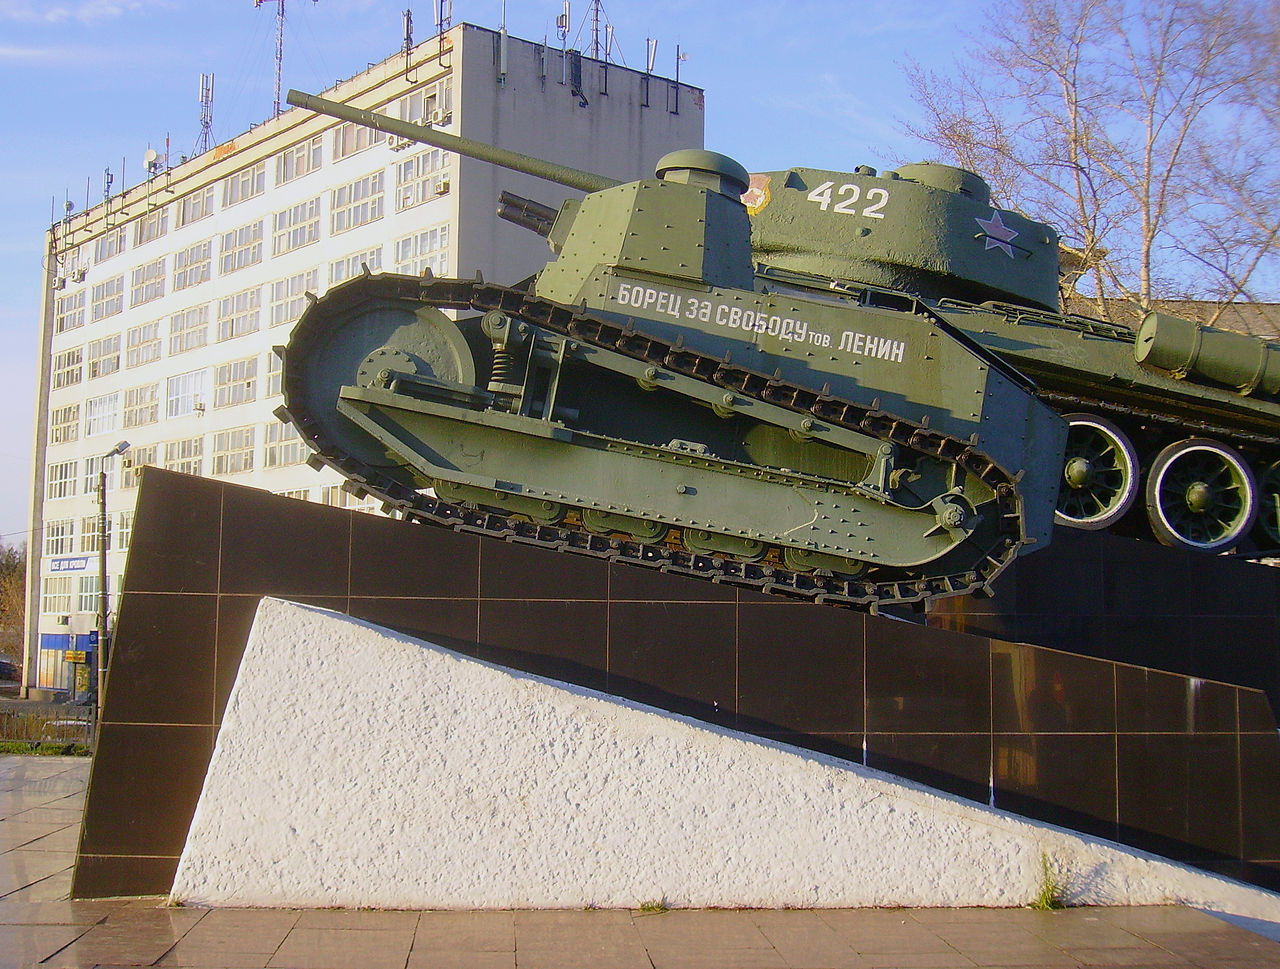 1280px-Monument_to_First_Soviet_Tank.jpg